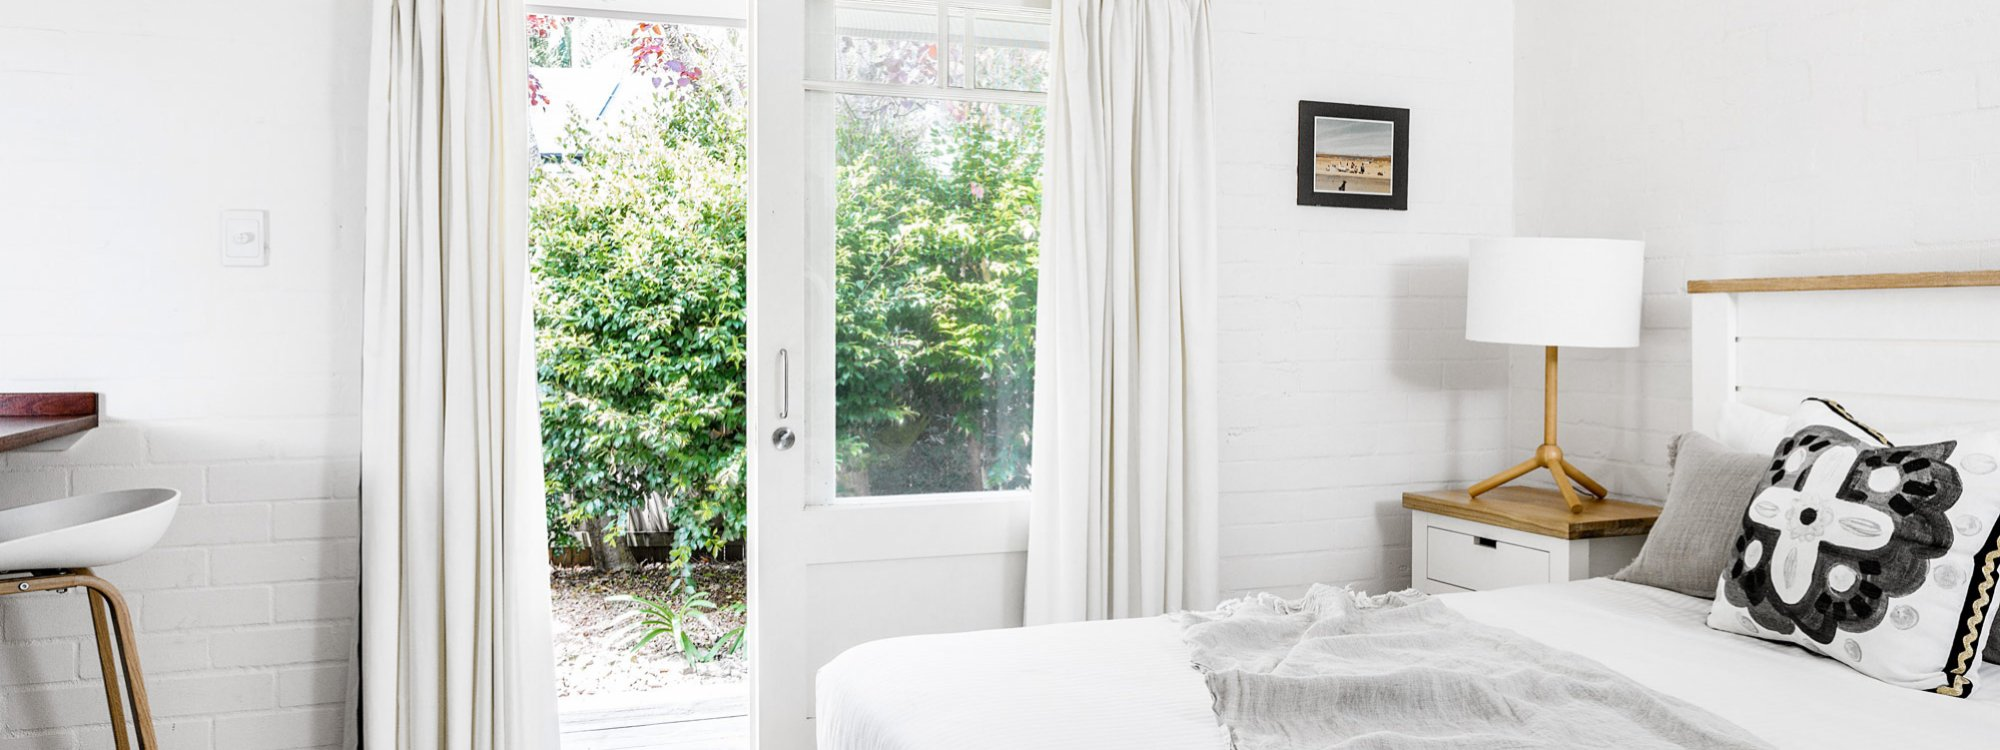 Beachwood - Byron Bay - Bedroom 1